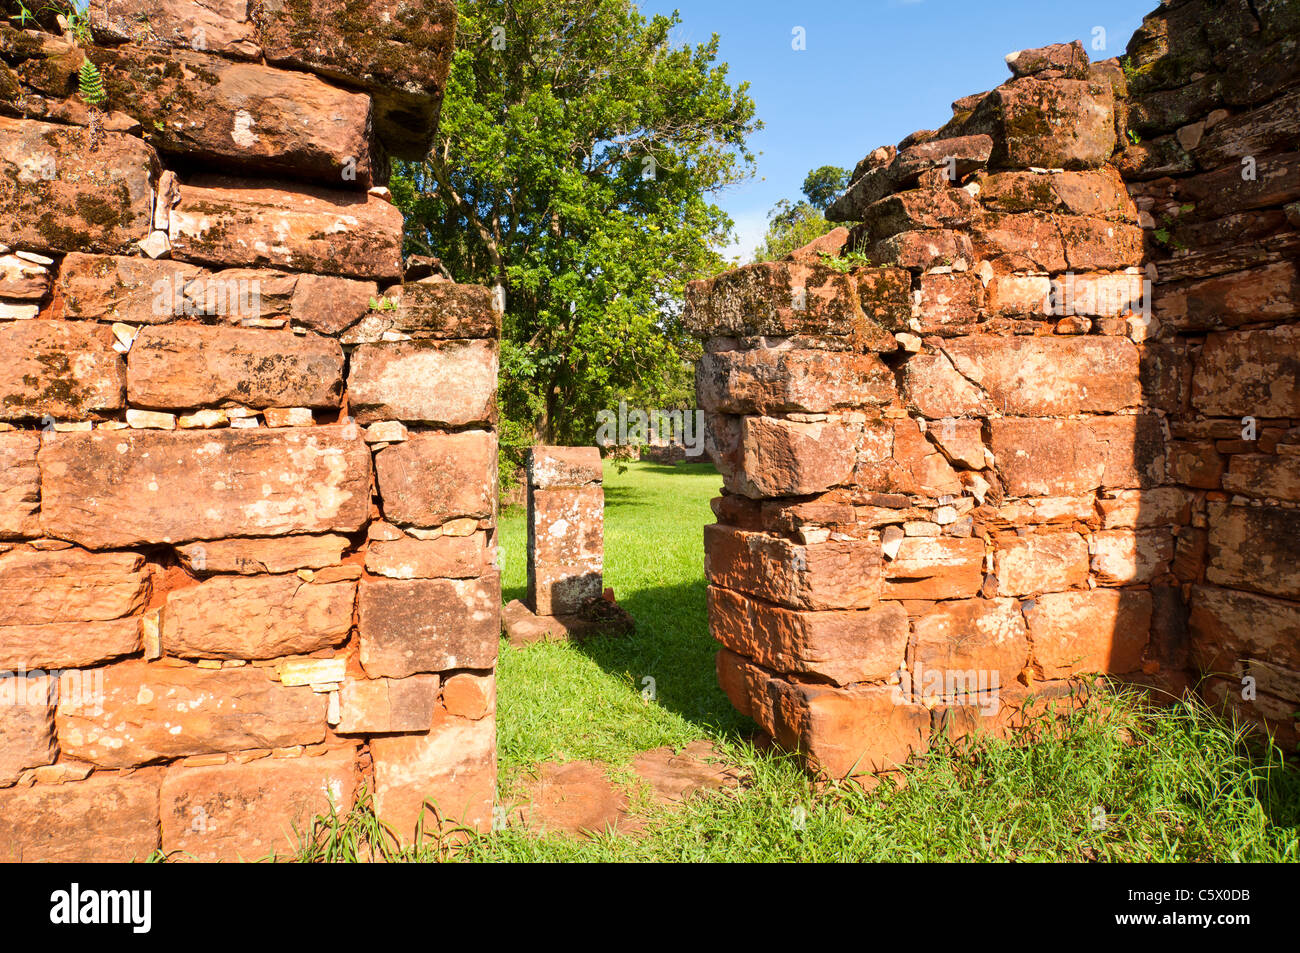 Ruins of the Jesuit reduction San Ignacio Mini, Indigenous dwelling houses, Misiones Province, Argentina - Stock Image